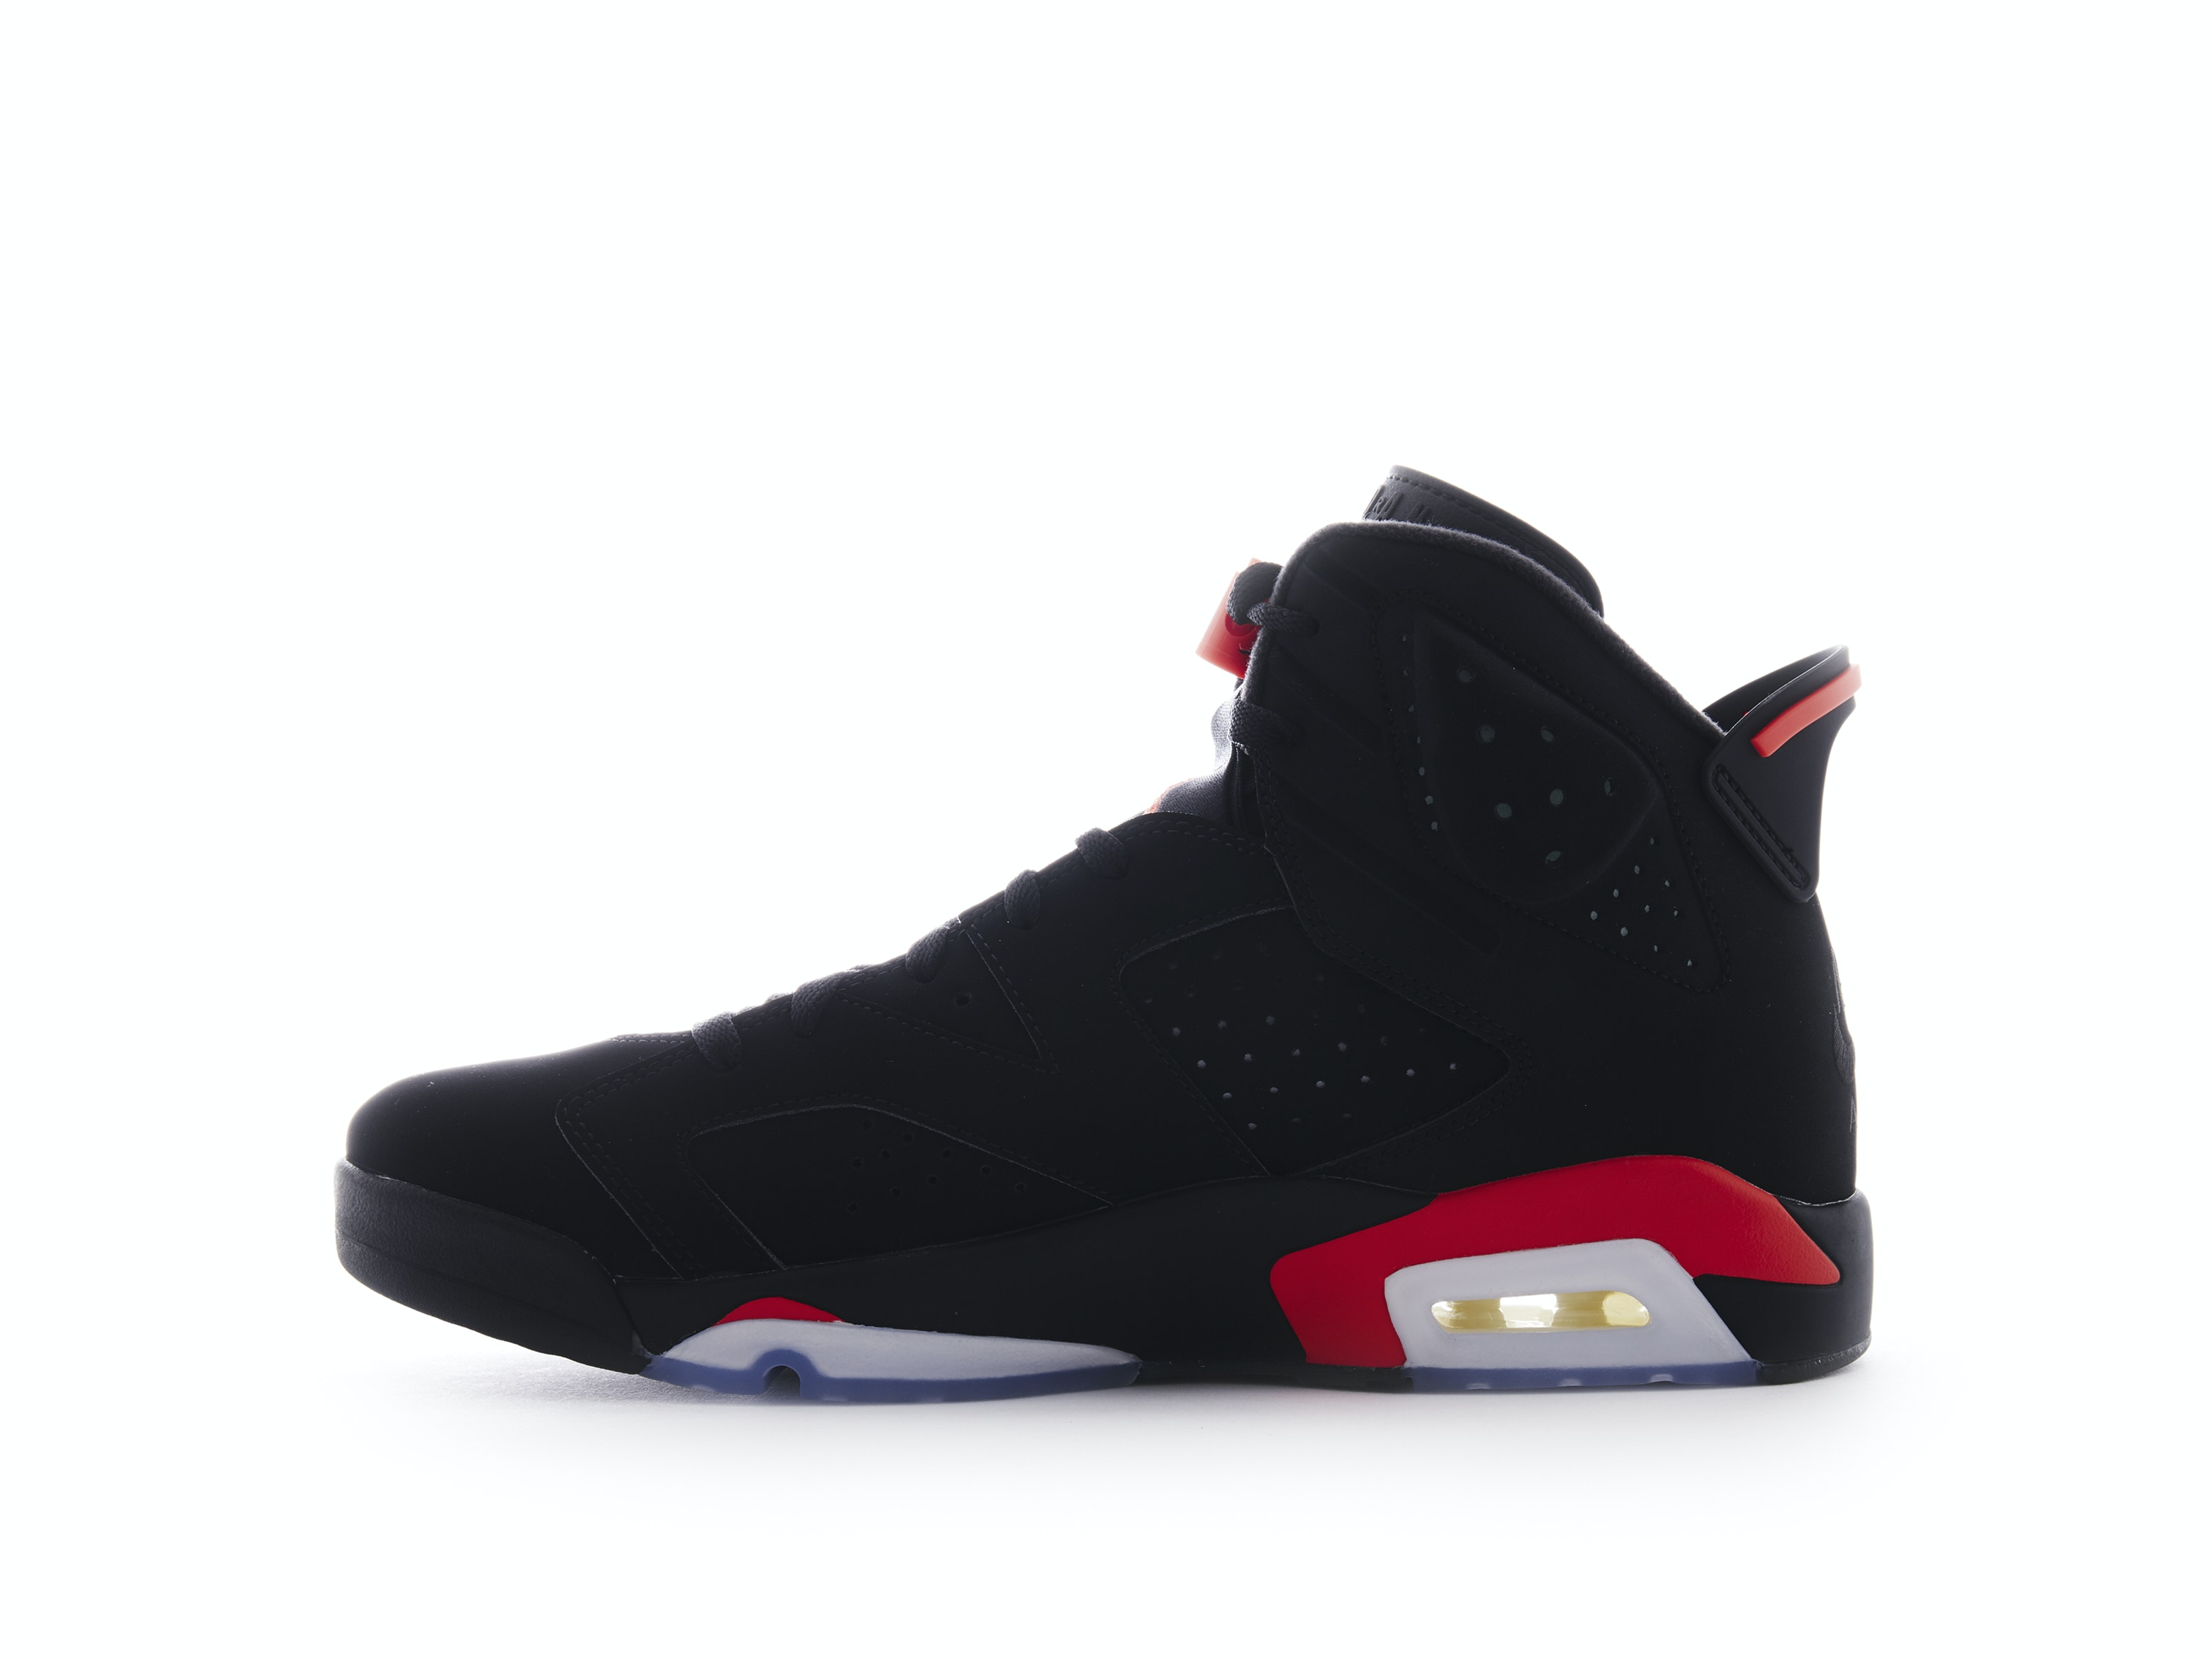 huge selection of f1a85 5157c Air Jordan 6 Retro Infrared 2019. 100% AuthenticAvg Delivery Time  1-2 days